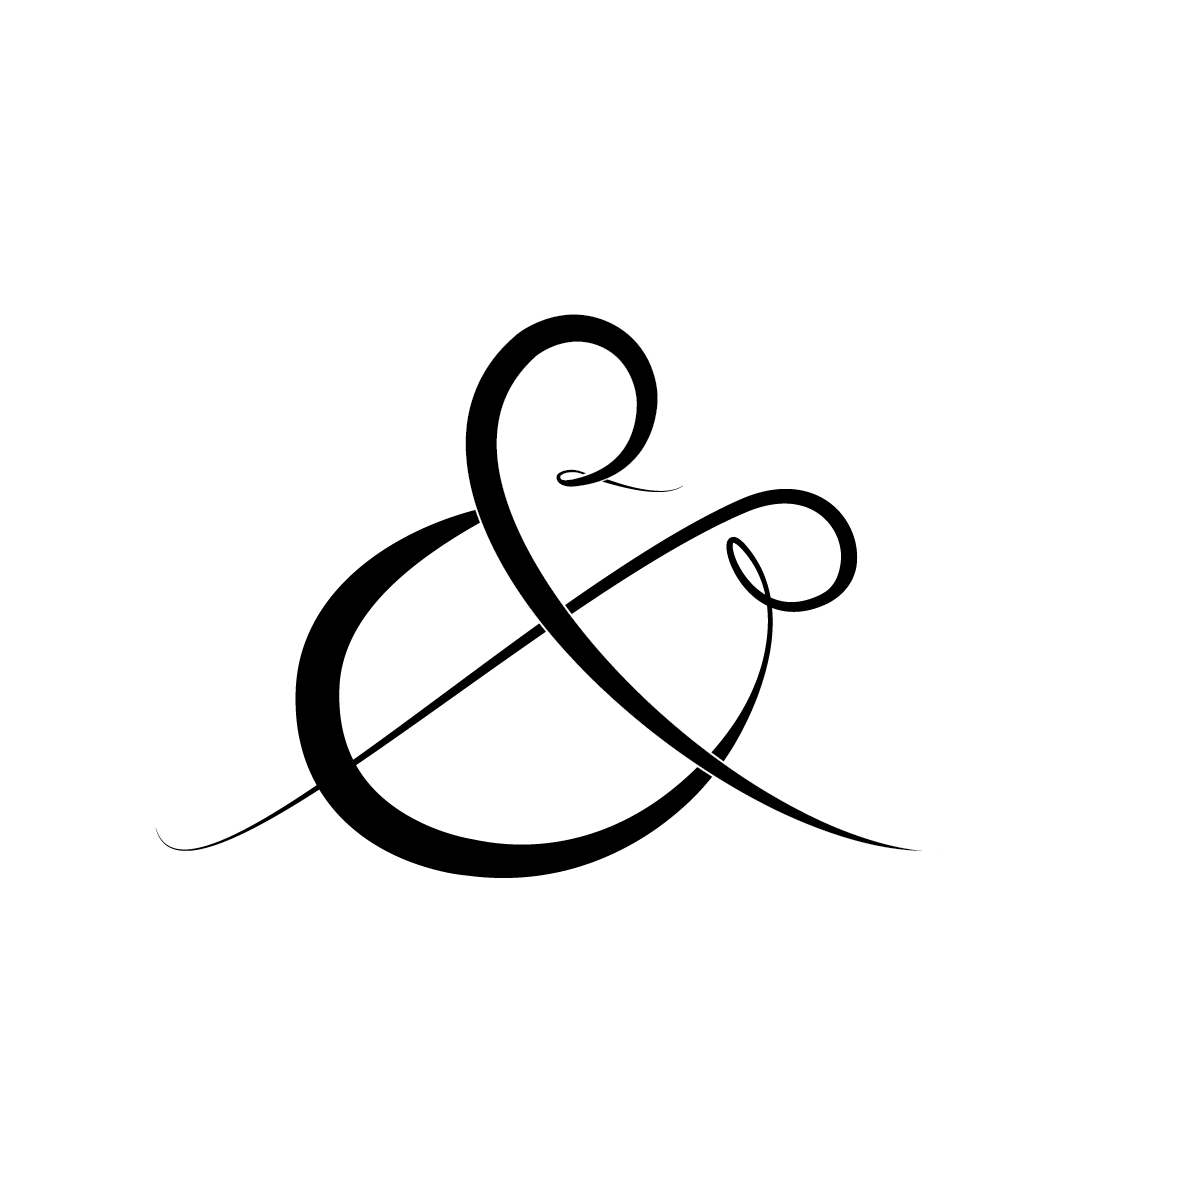 Ampersand_Grid_02-09